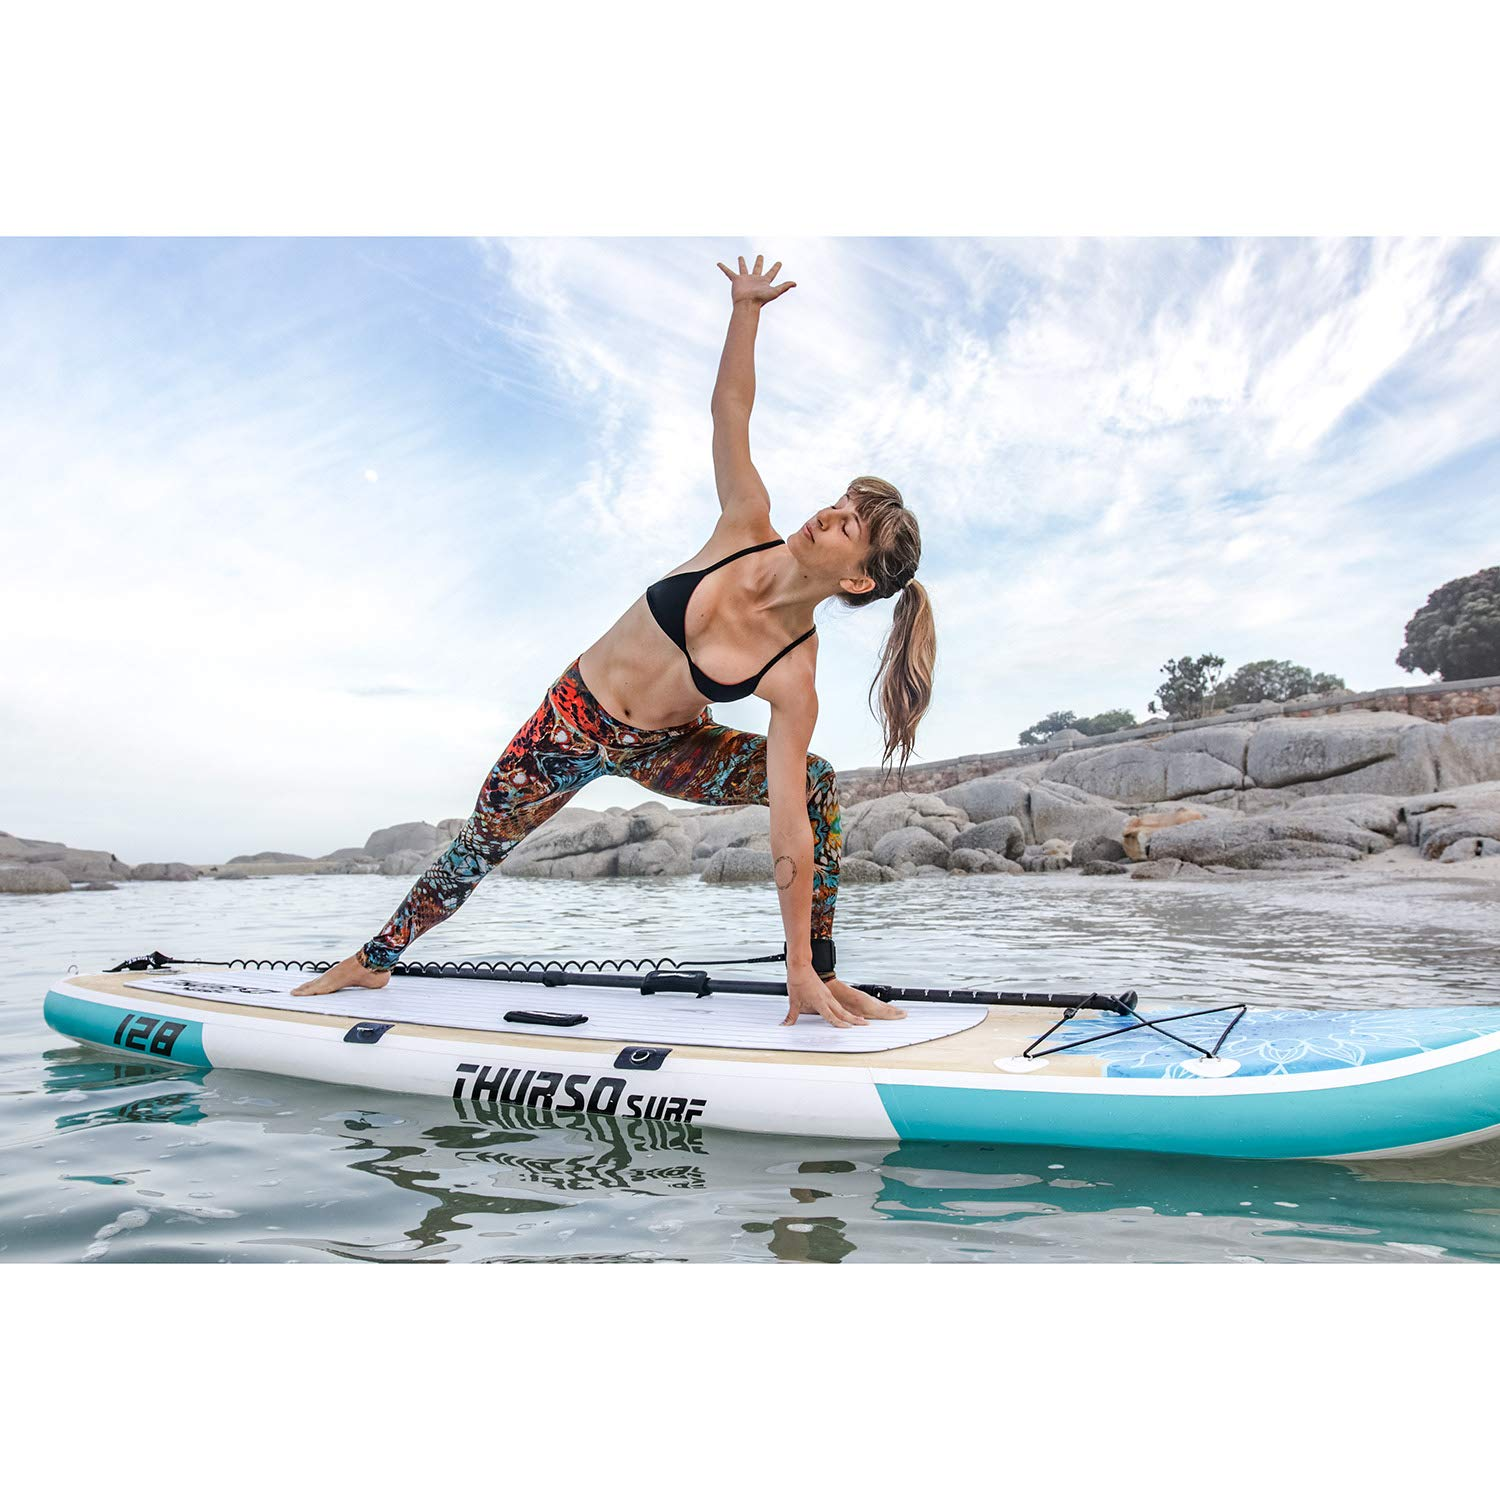 THURSO SURF Tranquility Yoga Inflatable Stand Up Paddle Board SUP 108 x 34 x 6 Two Layer Deluxe Package Includes Carbon Shaft Paddle/2+1 Quick ...